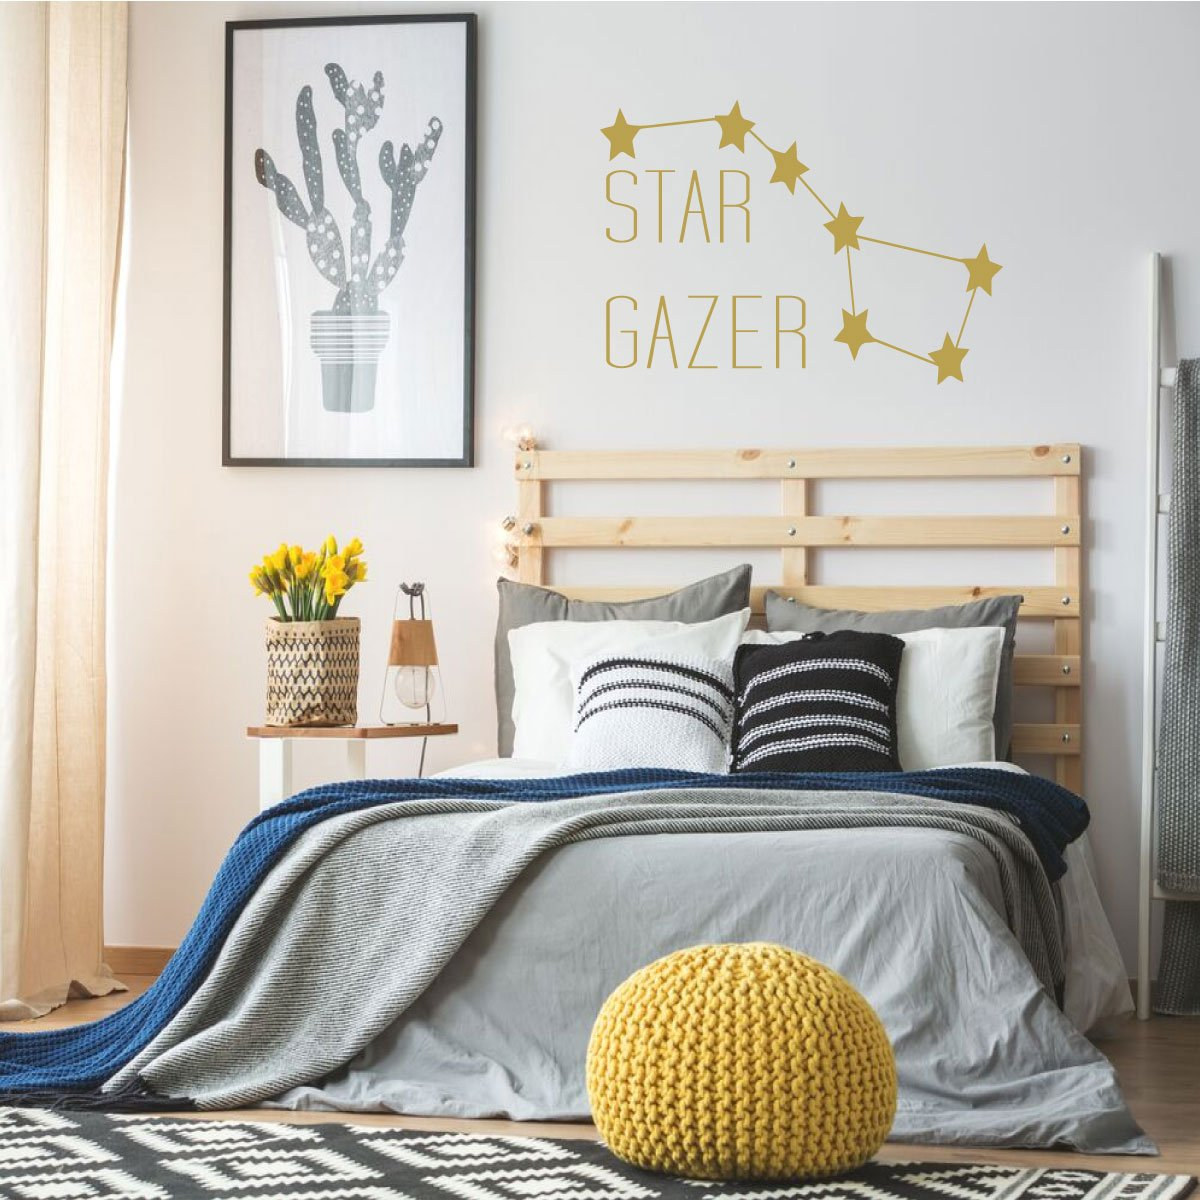 Star Gazer Big Dipper Vinyl Wall Decal Home Decor for Kids Bedroom